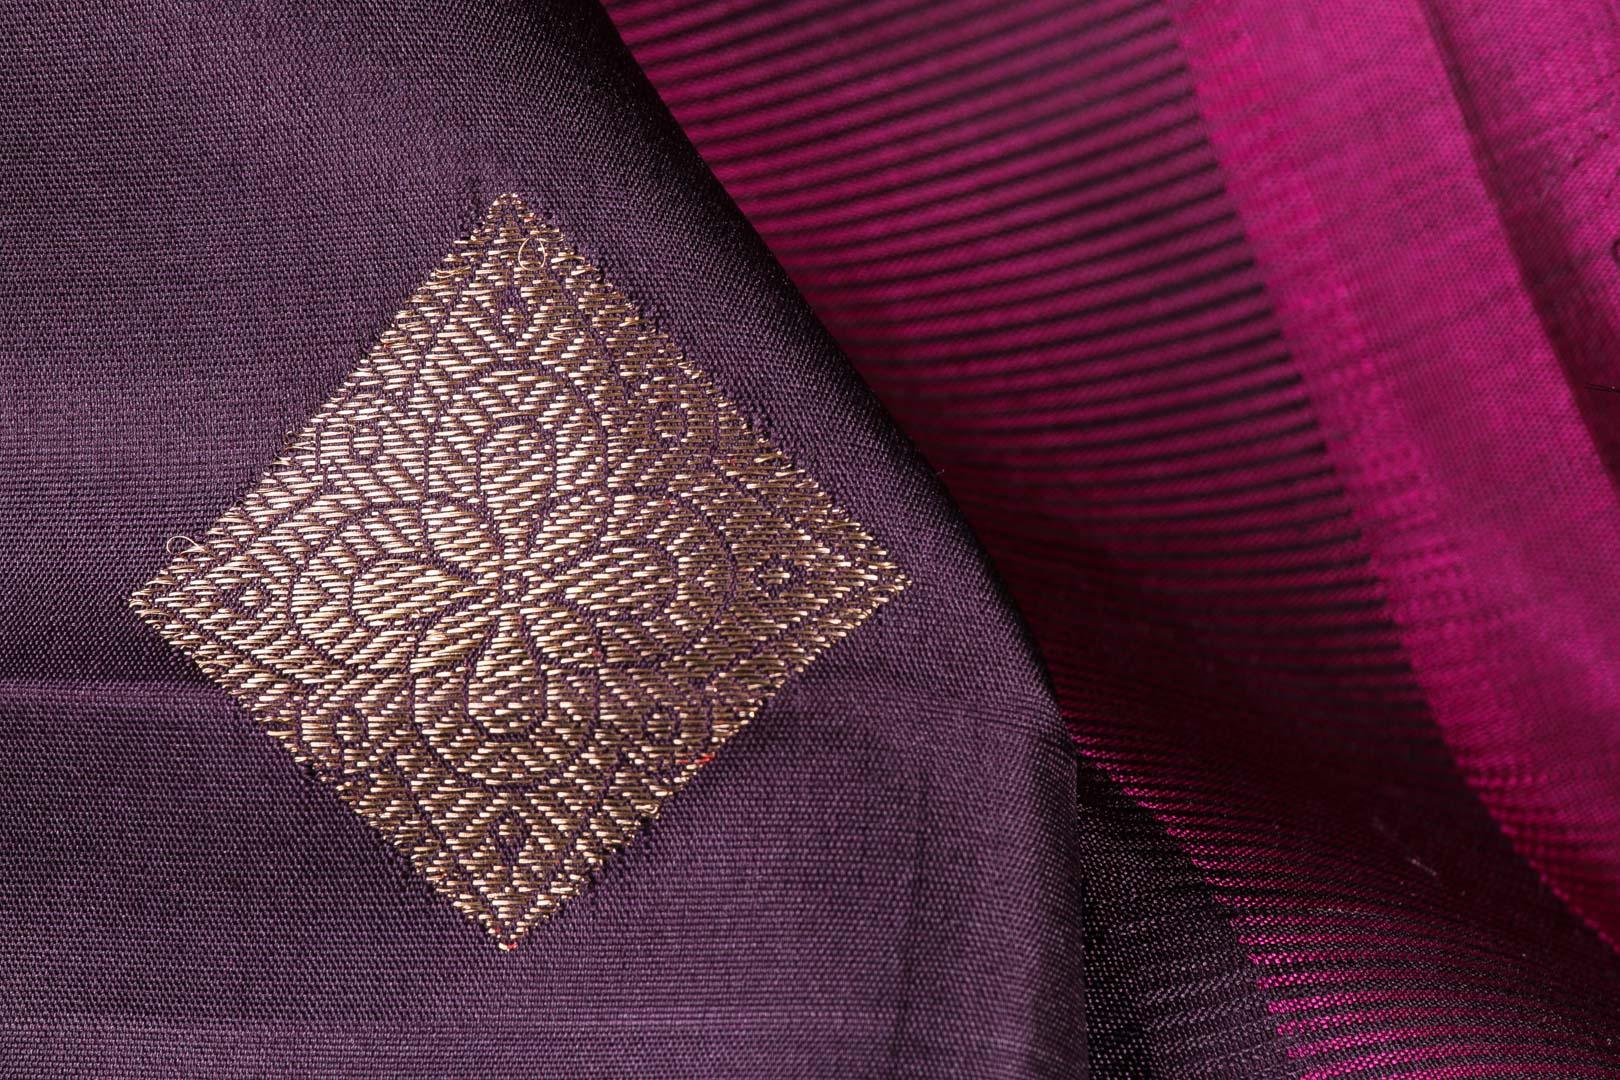 Traditional Design - Handwoven Kanjivaram Silk Saree - Pure Zari - PVM 0318 1010 Archives